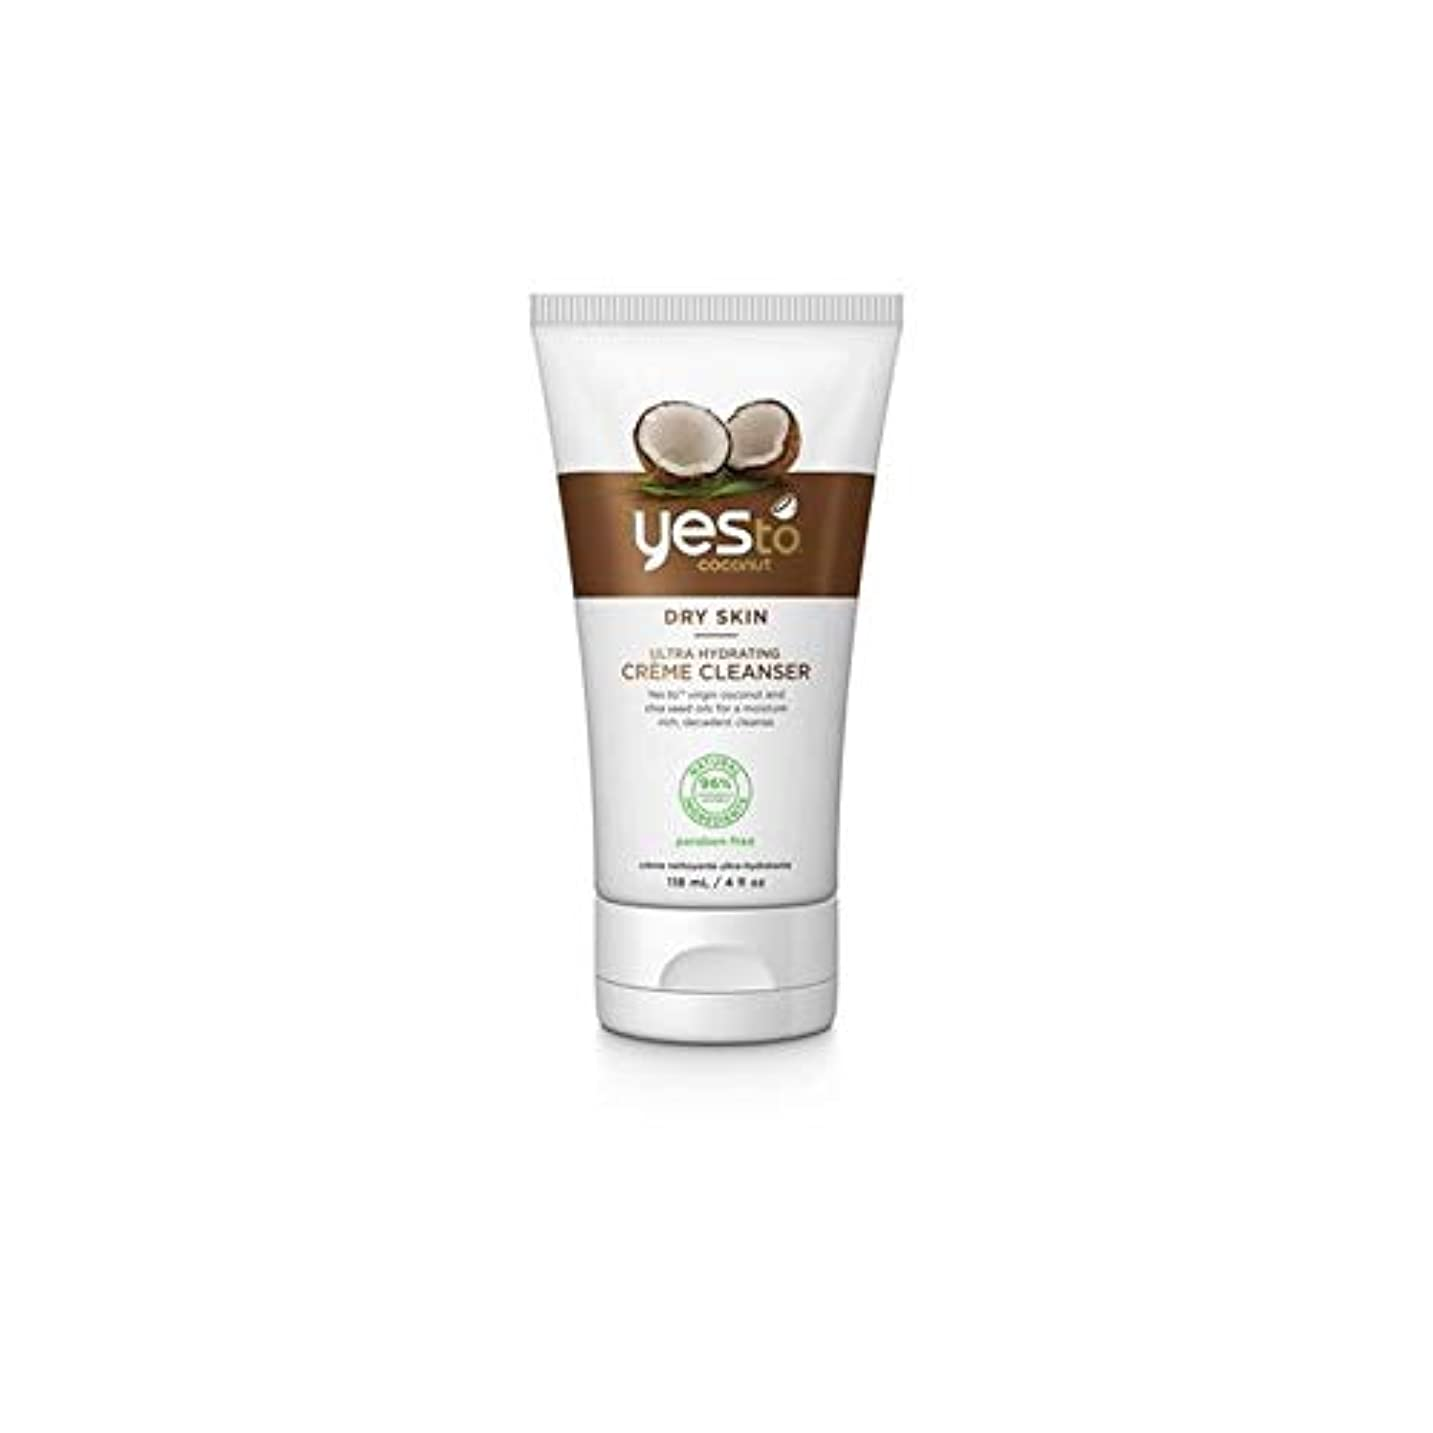 [YES TO! ] はい、超水和クリームクレンザー118ミリリットルをココナッツします - Yes To Coconut Ultra Hydrating Creme Cleanser 118ml [並行輸入品]